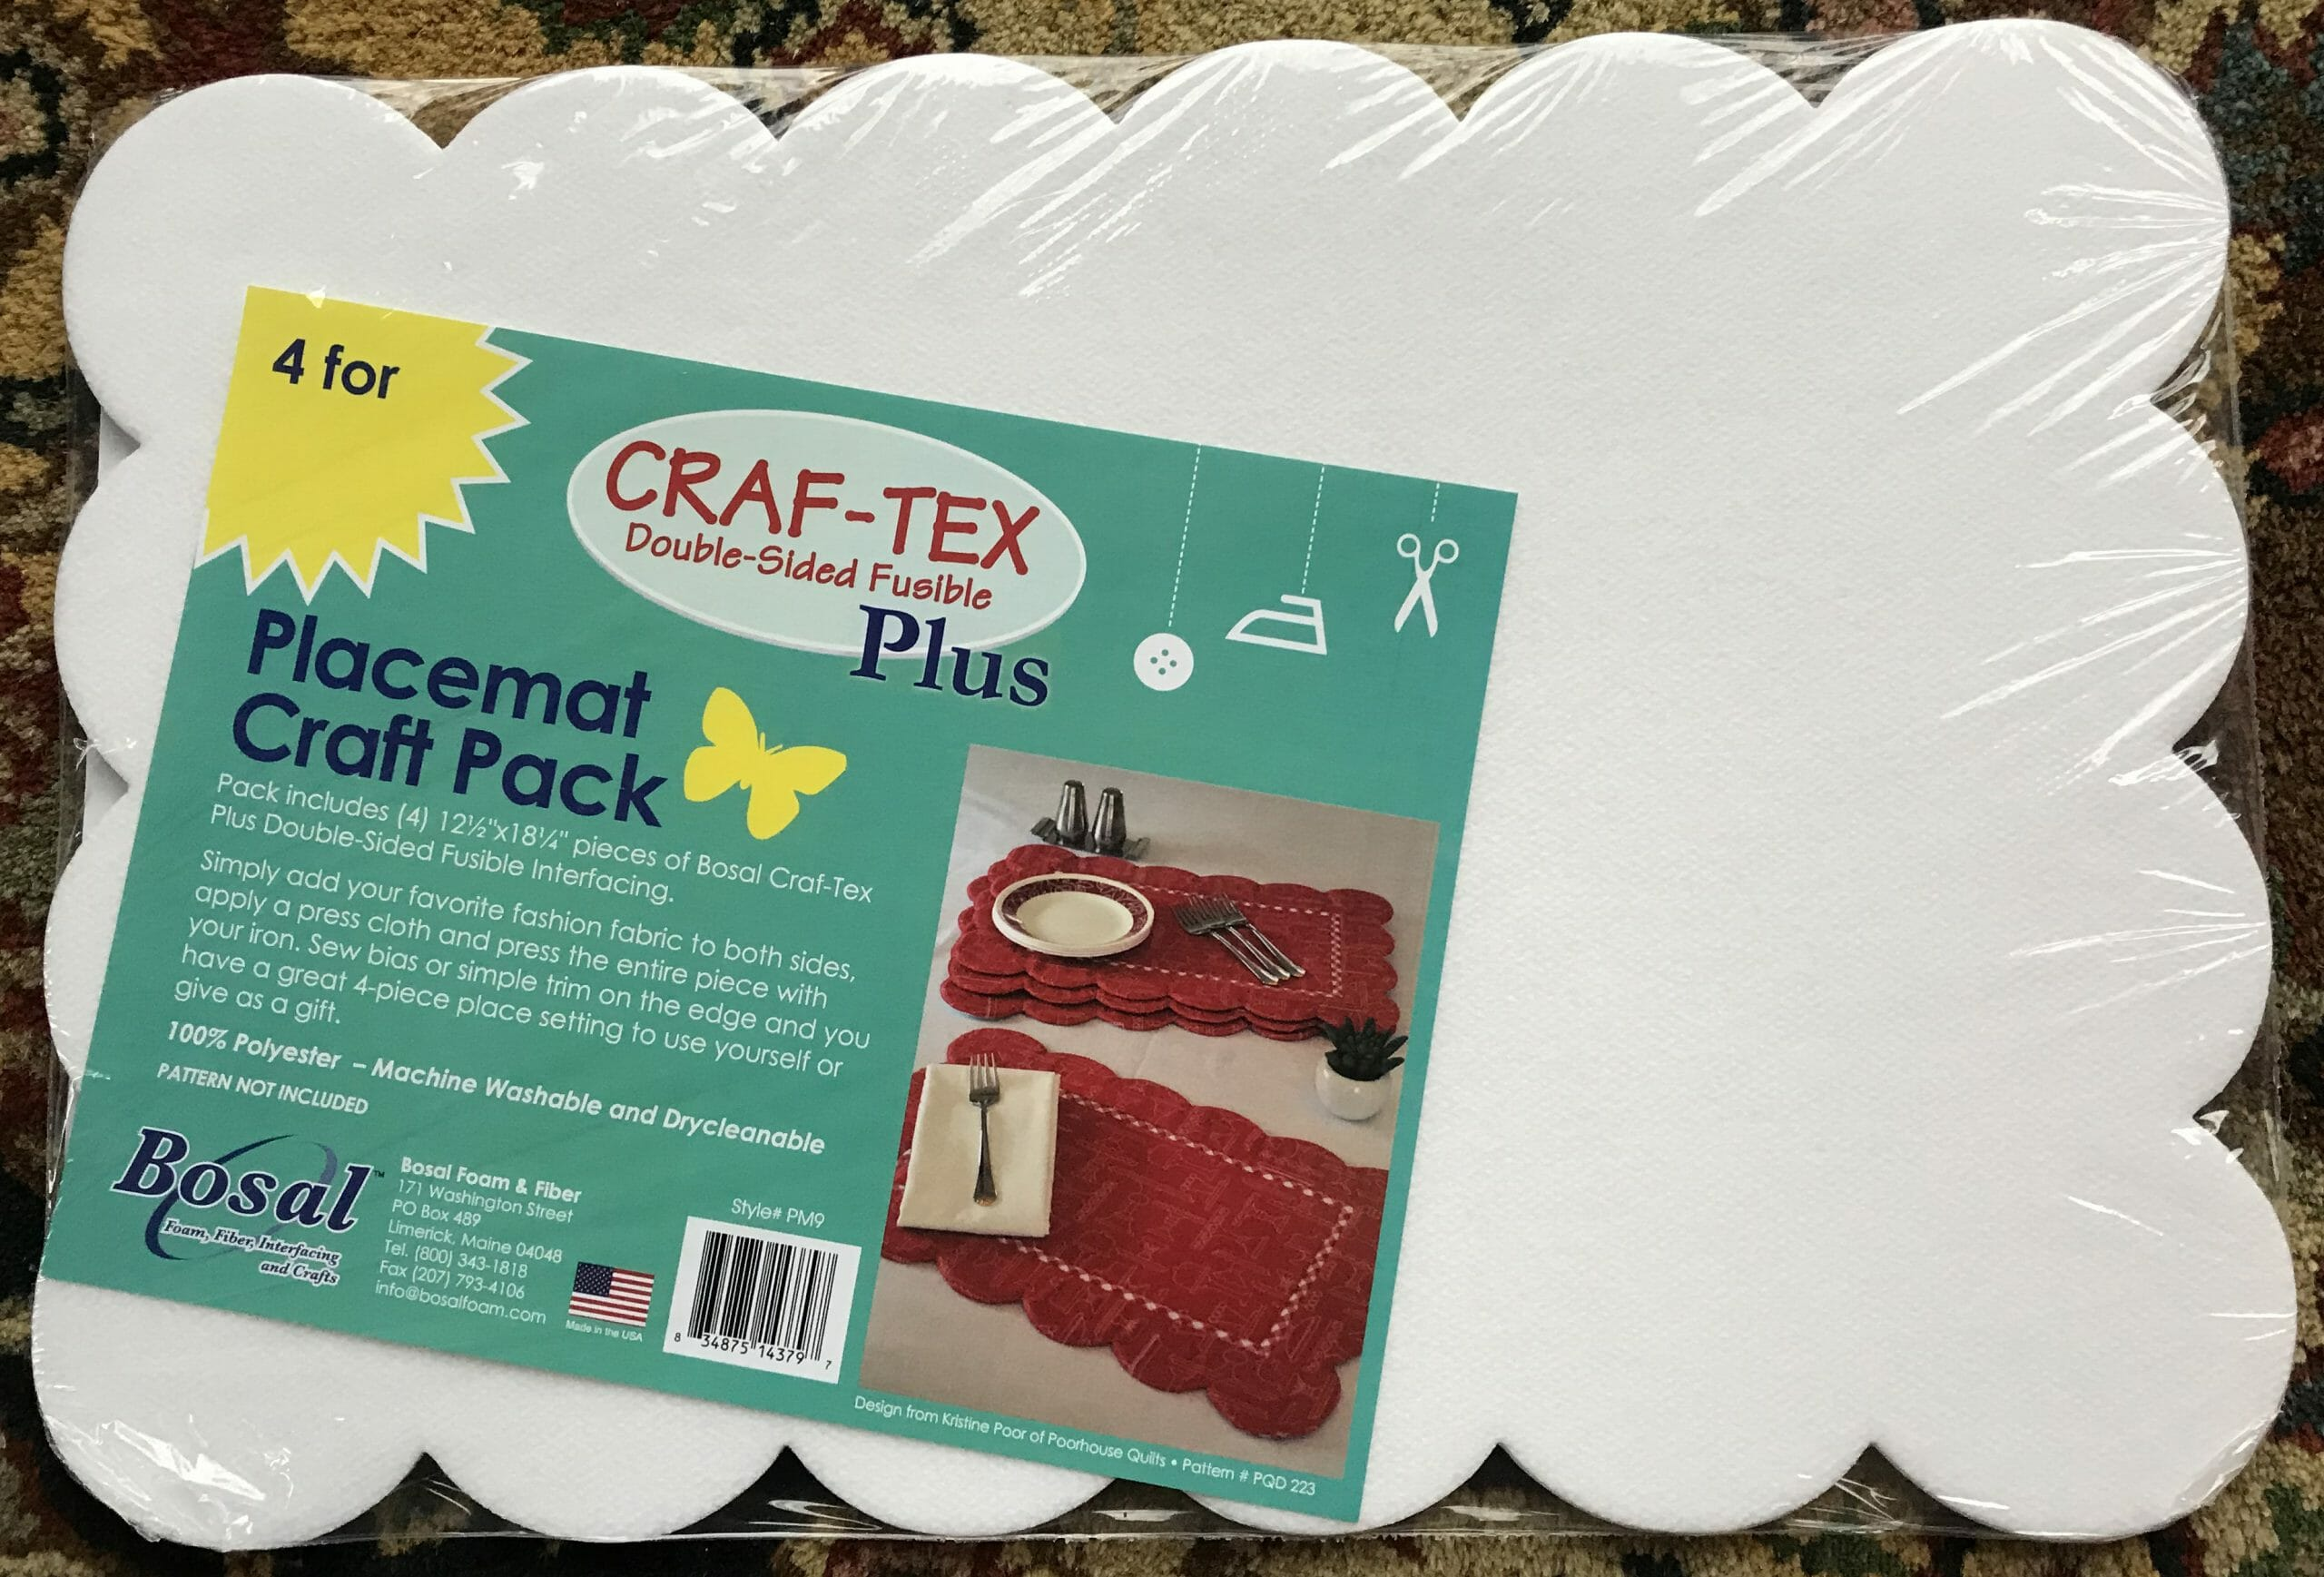 Scalloped Craf-tex Plus Placemat Craft Pack by Bosal – 4/pkg